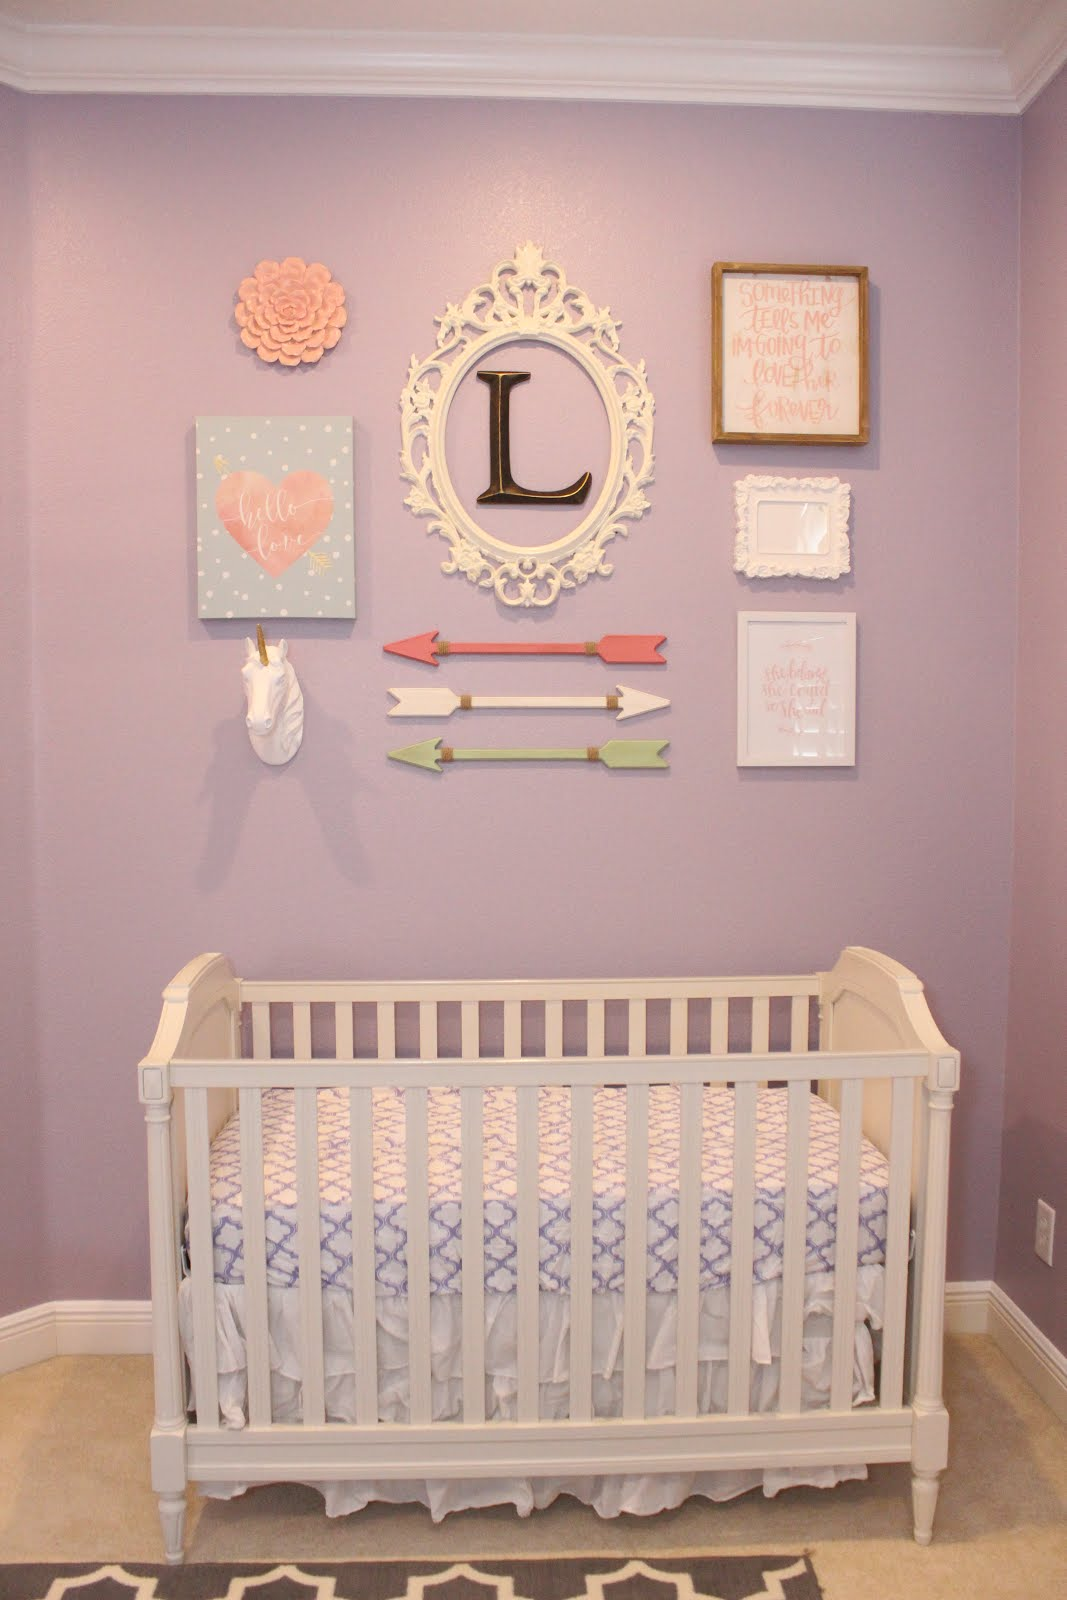 Still working on her middle name  and her nursery  but things are coming  along nicely. Organized Chaos  February 2017